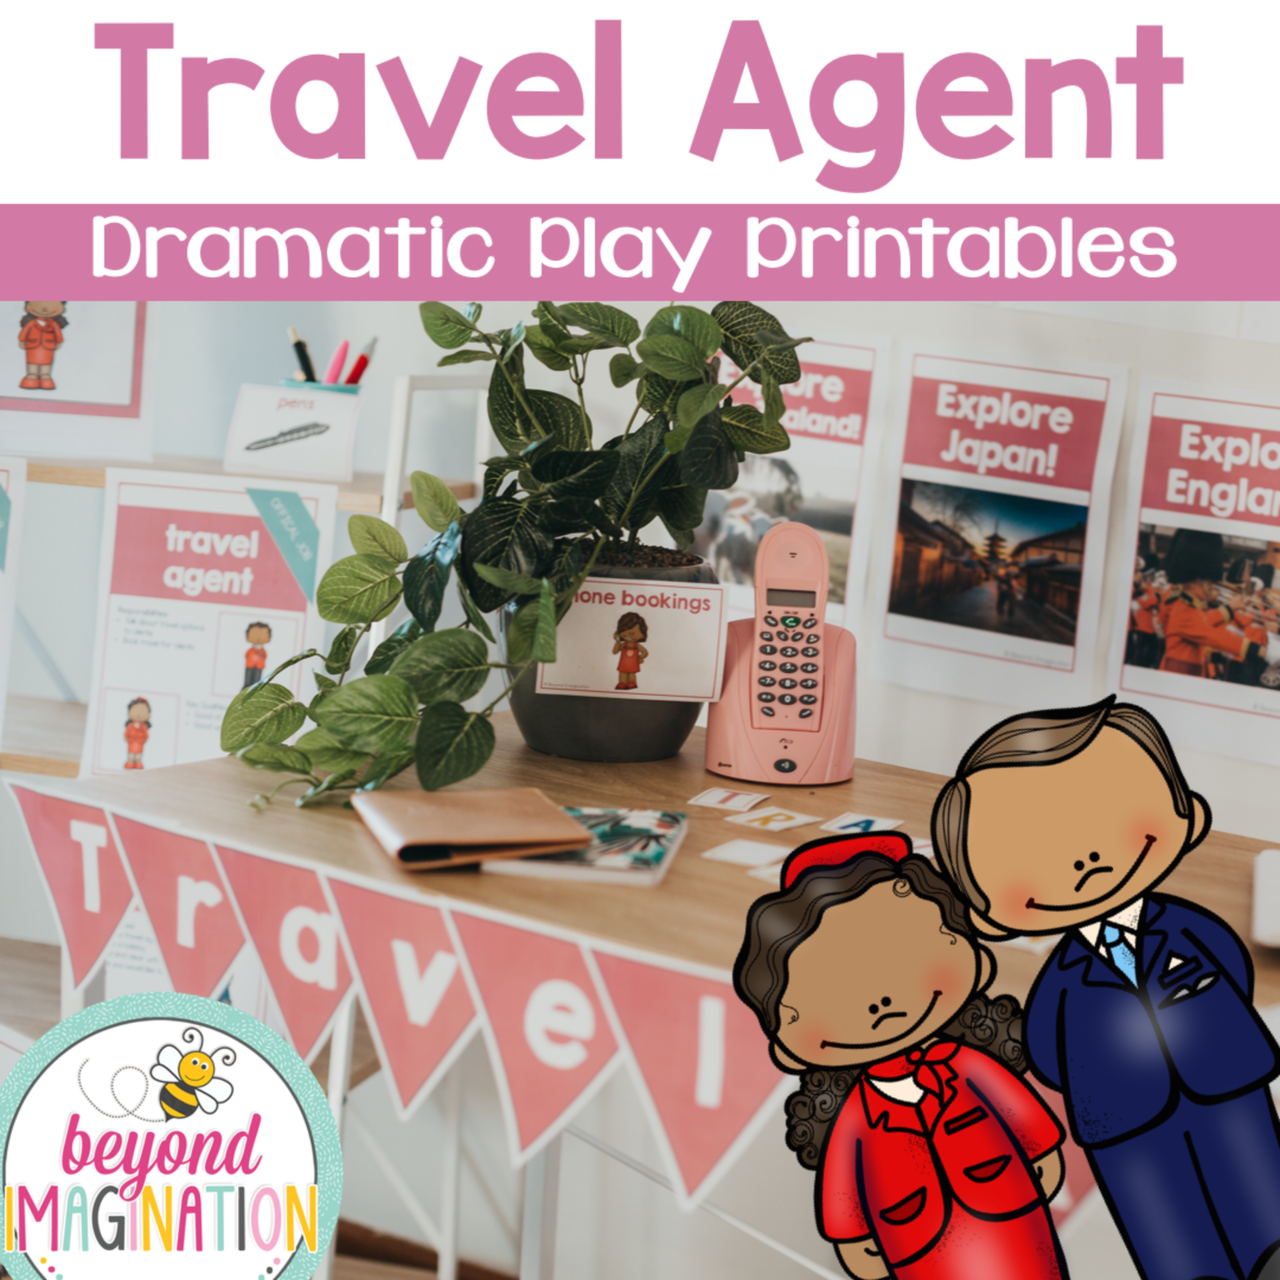 Travel Agent Dramatic Play